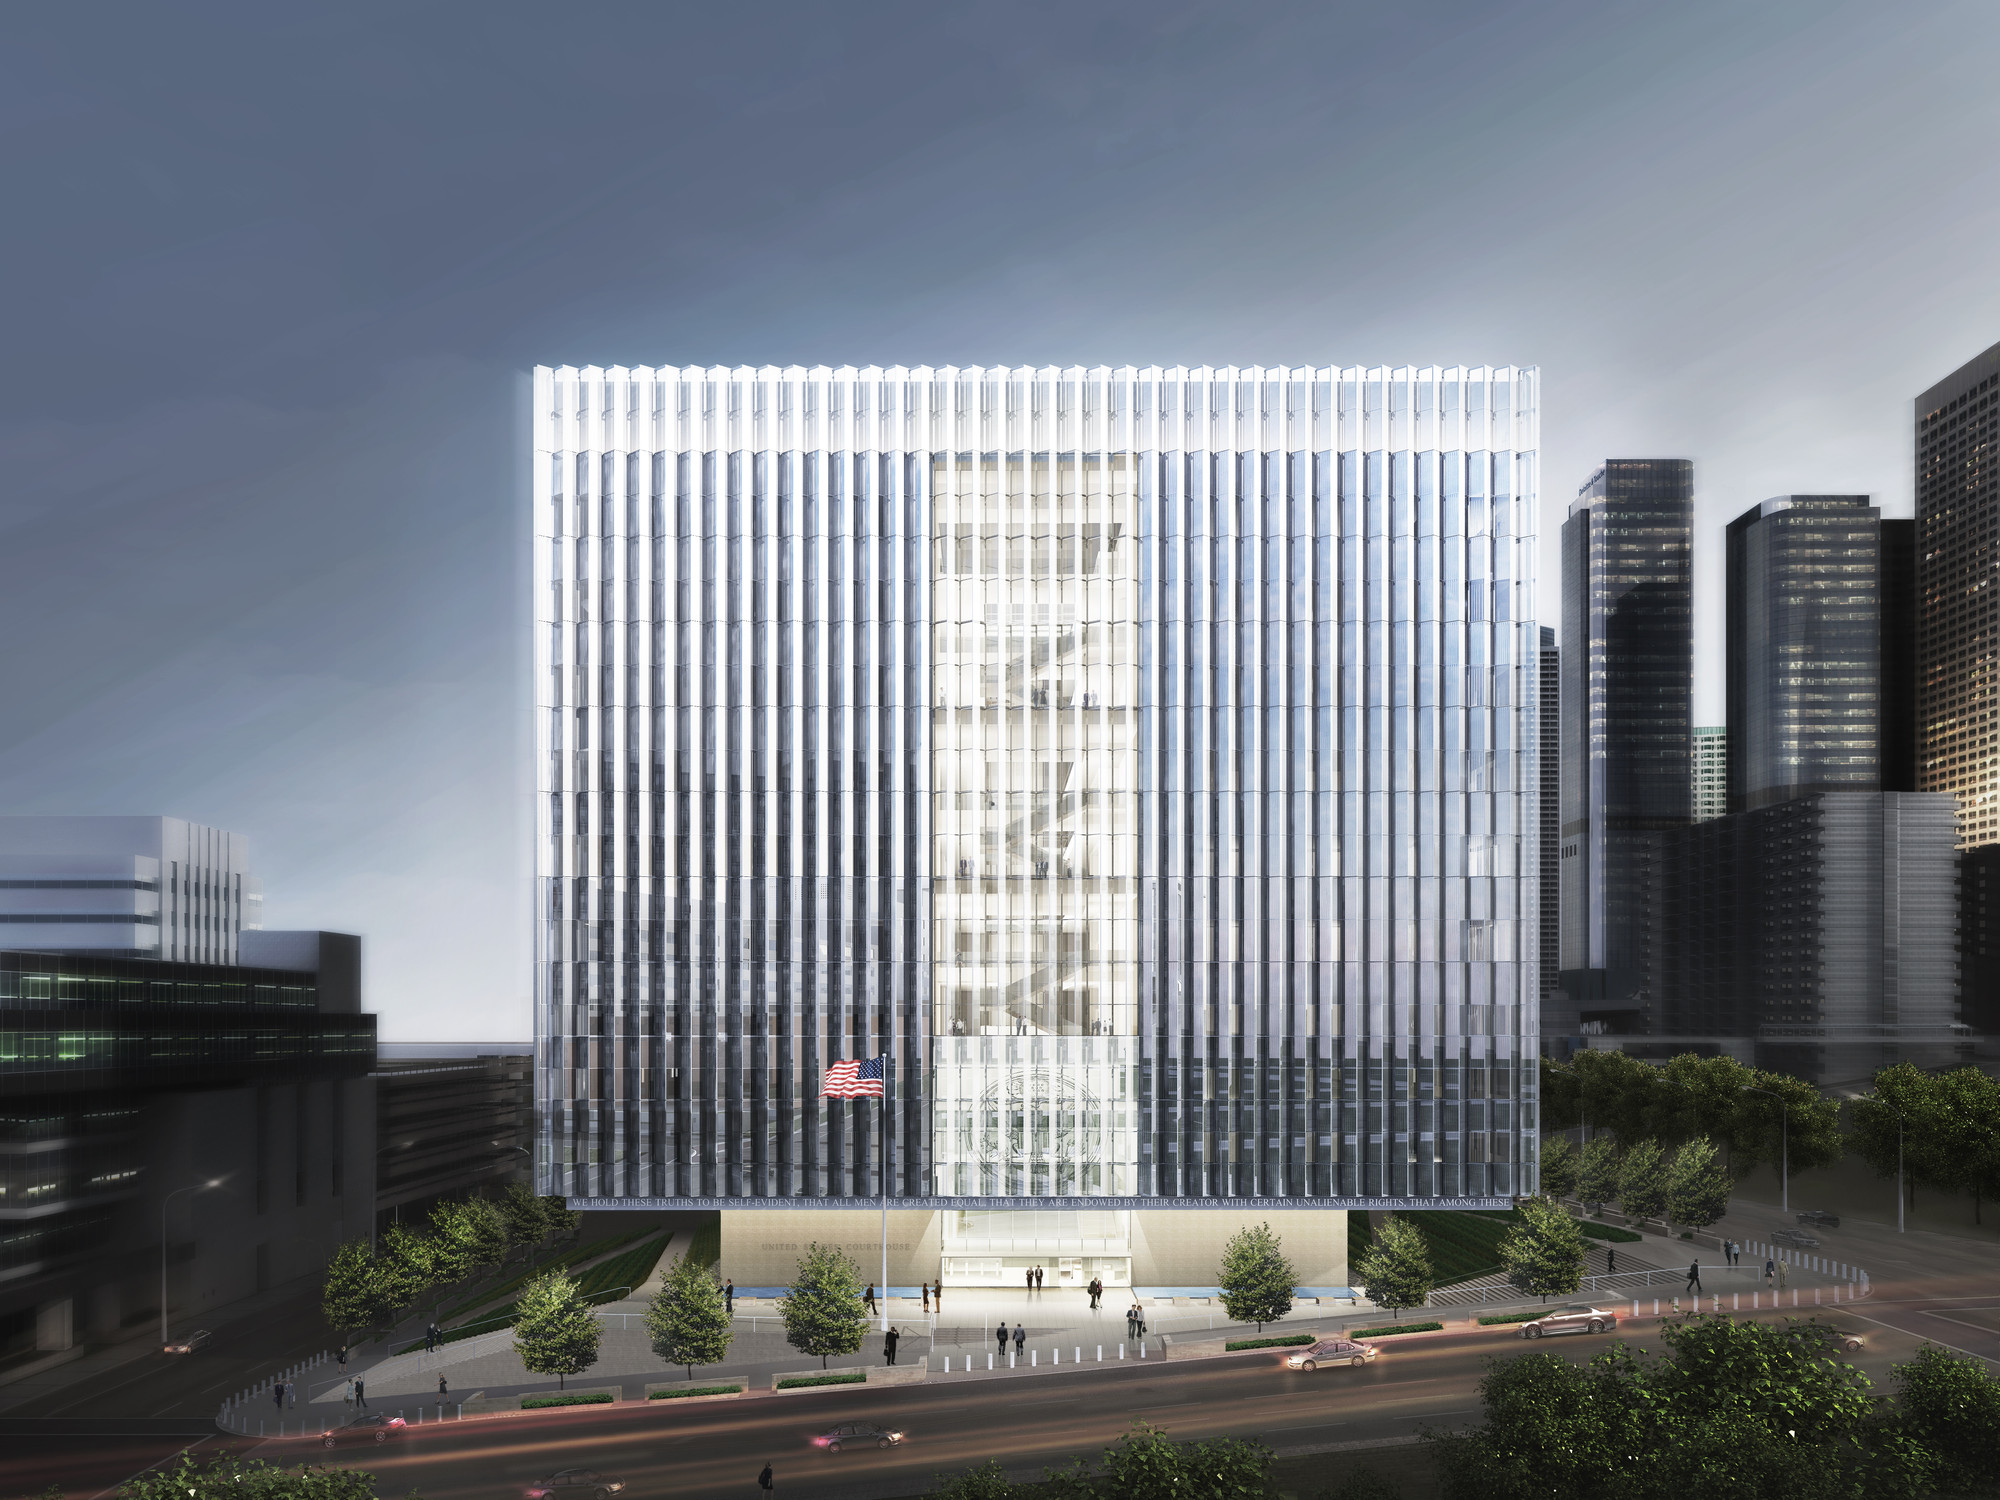 New United States Courthouse. Image © Skidmore, Owings & Merrill LLP